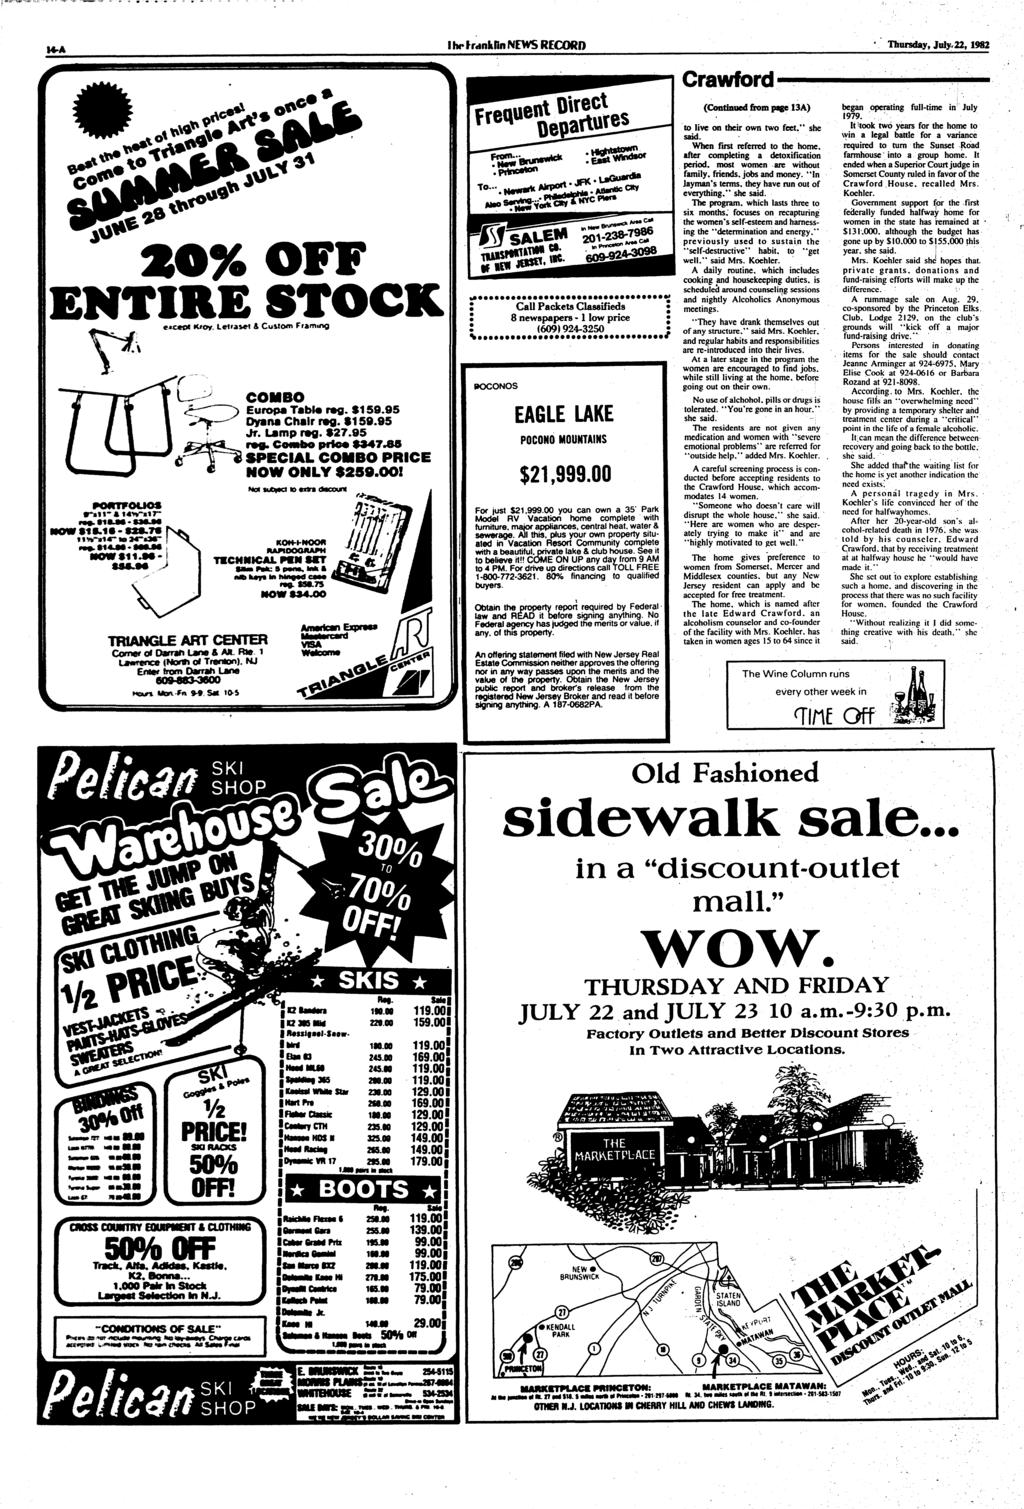 I hr IrdnkDn NEWS RECORD 4 Thursday, July, 22, 1982 2O% OFF ENTIRE STOCK **c*t* K/ov leitaset & Custom Framing COMBO Europa Tabto rag. $159.95 Dyana Chair rag. $159.95 Jr. Lamp rag. $27.95 rag.